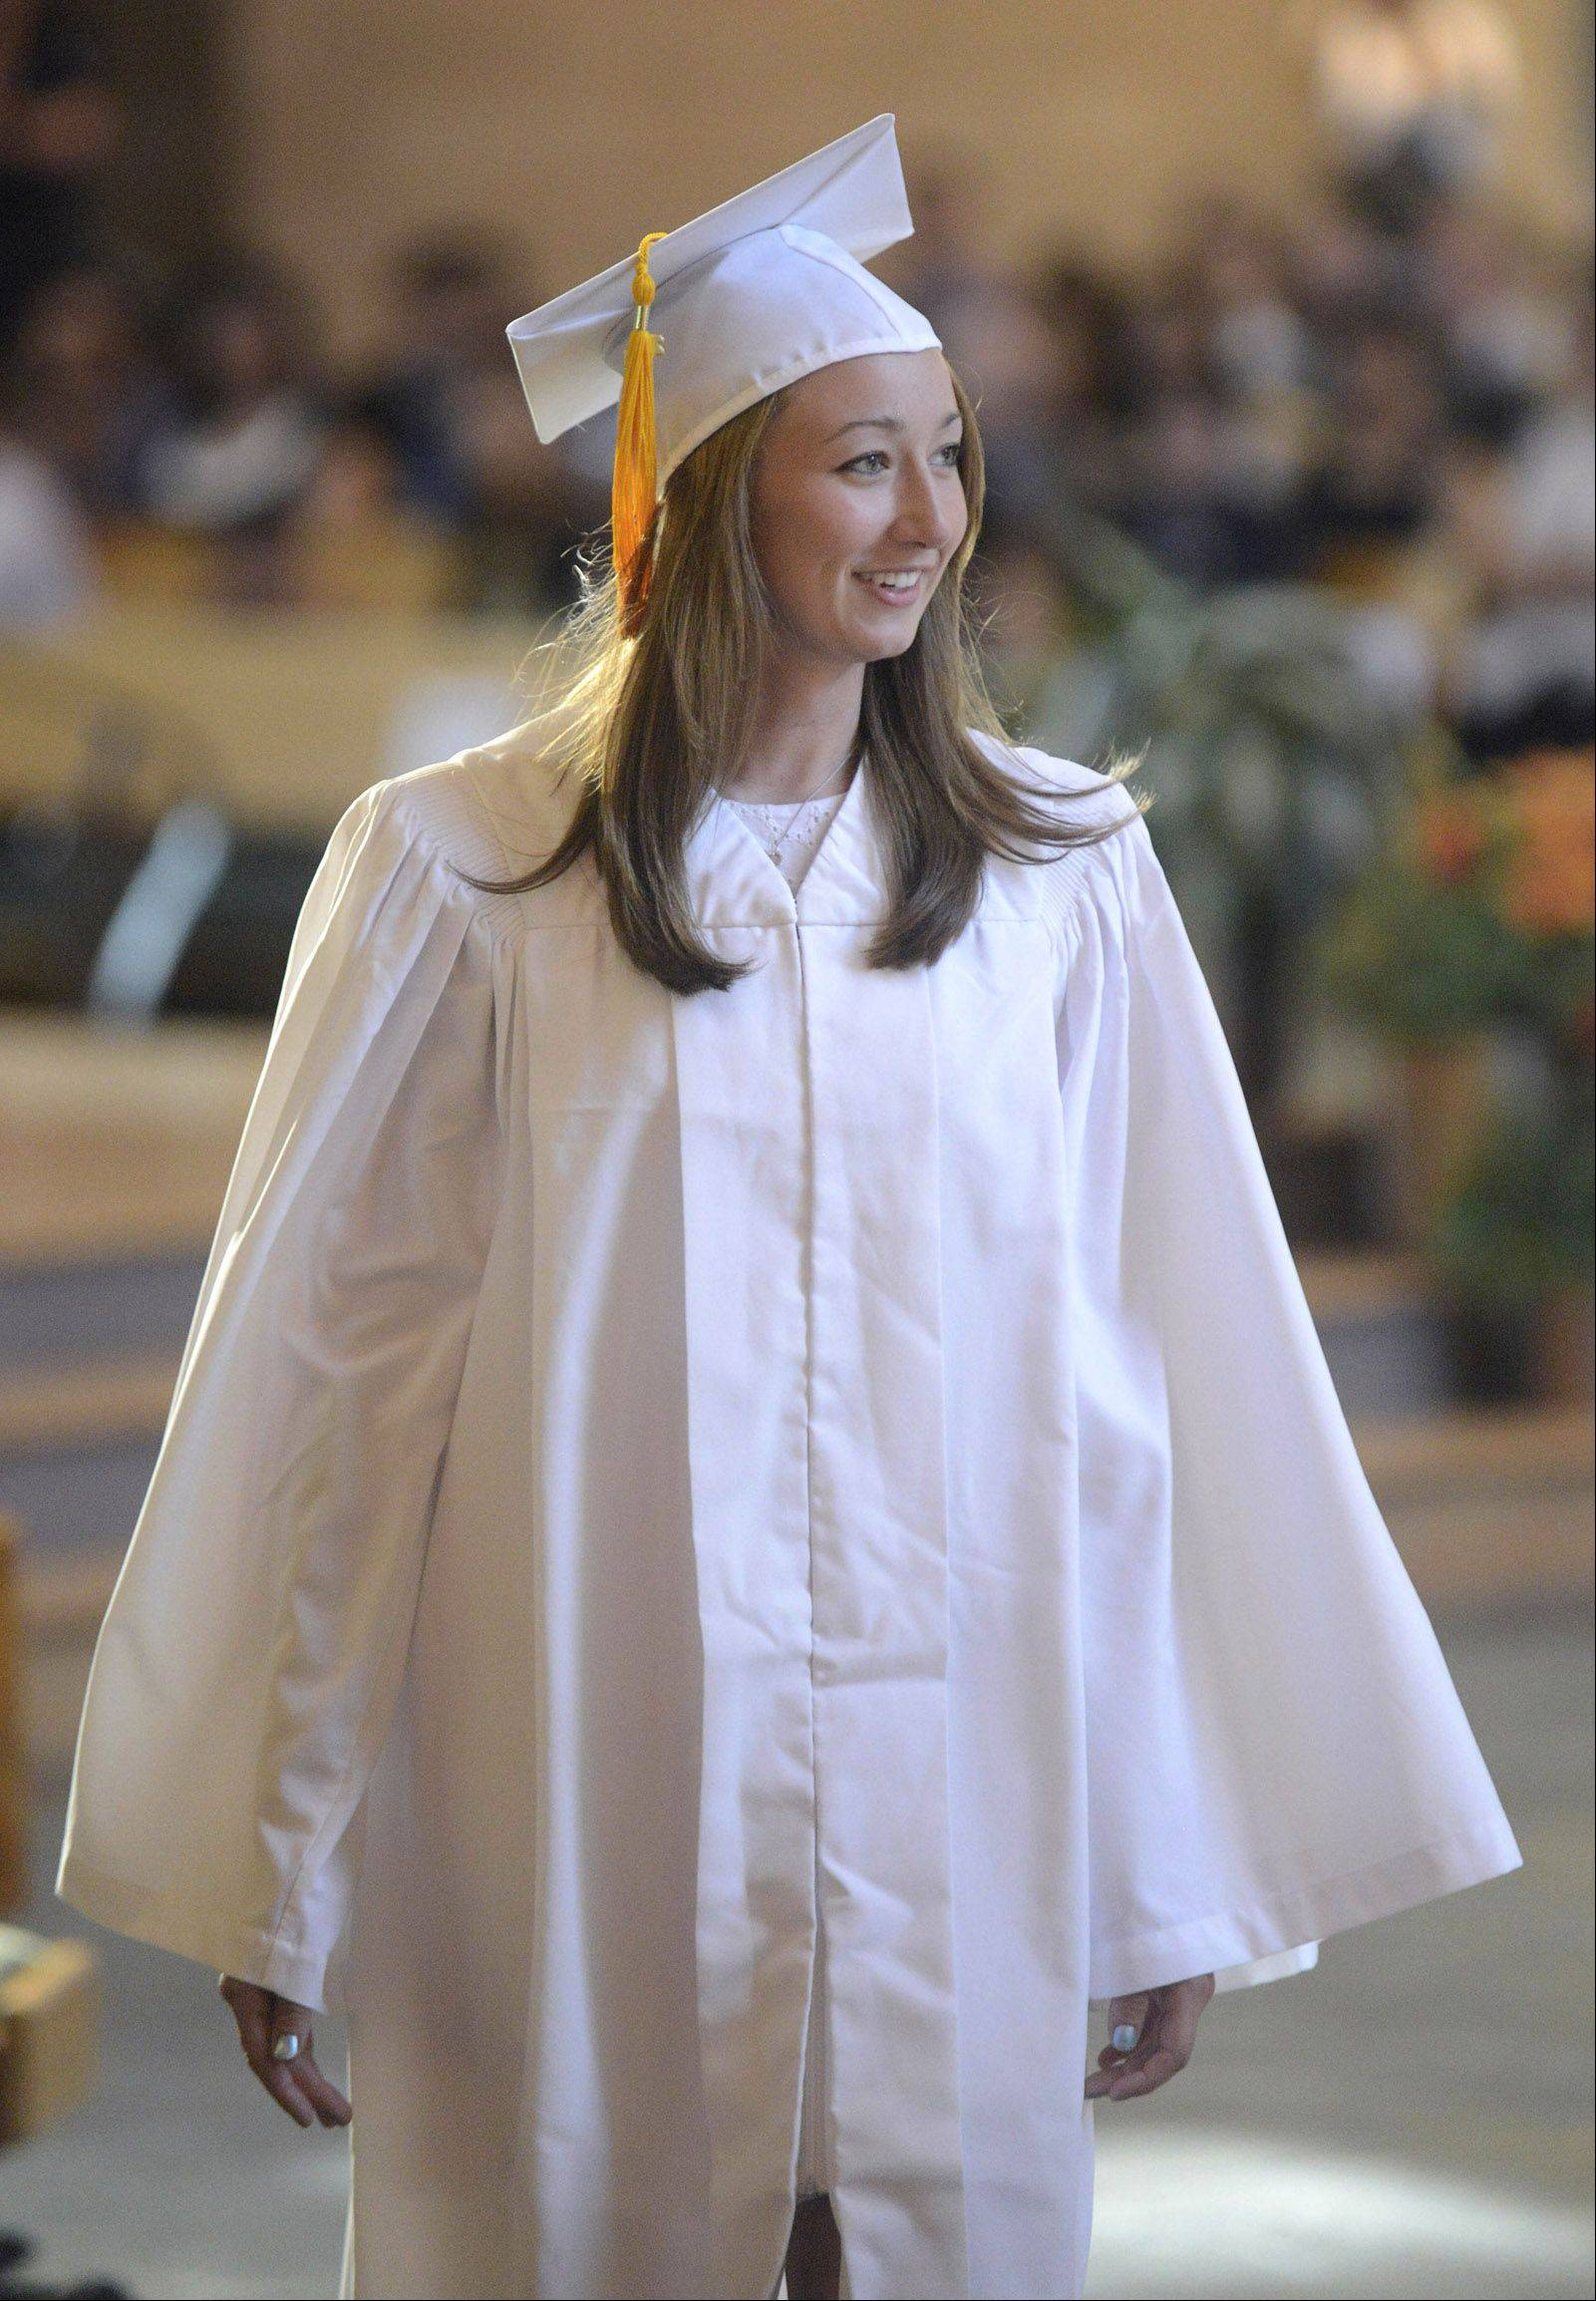 Images from the Rosary High School graduation ceremony Tuesday, May 21, 2013 in St. Charles.